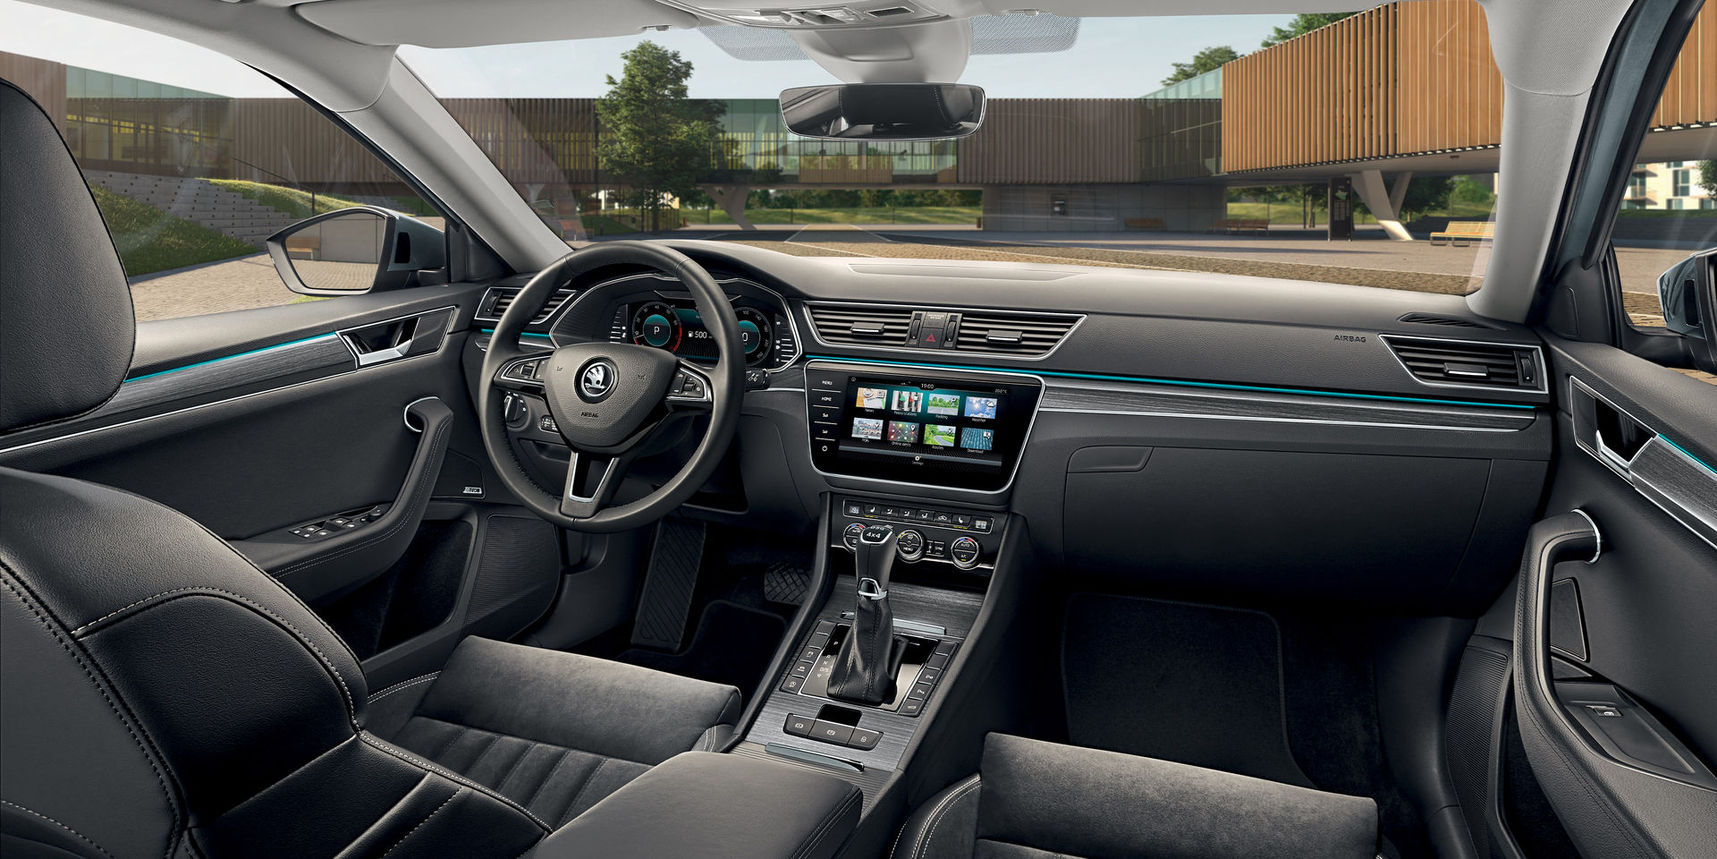 skoda-superb-m62-interior-01